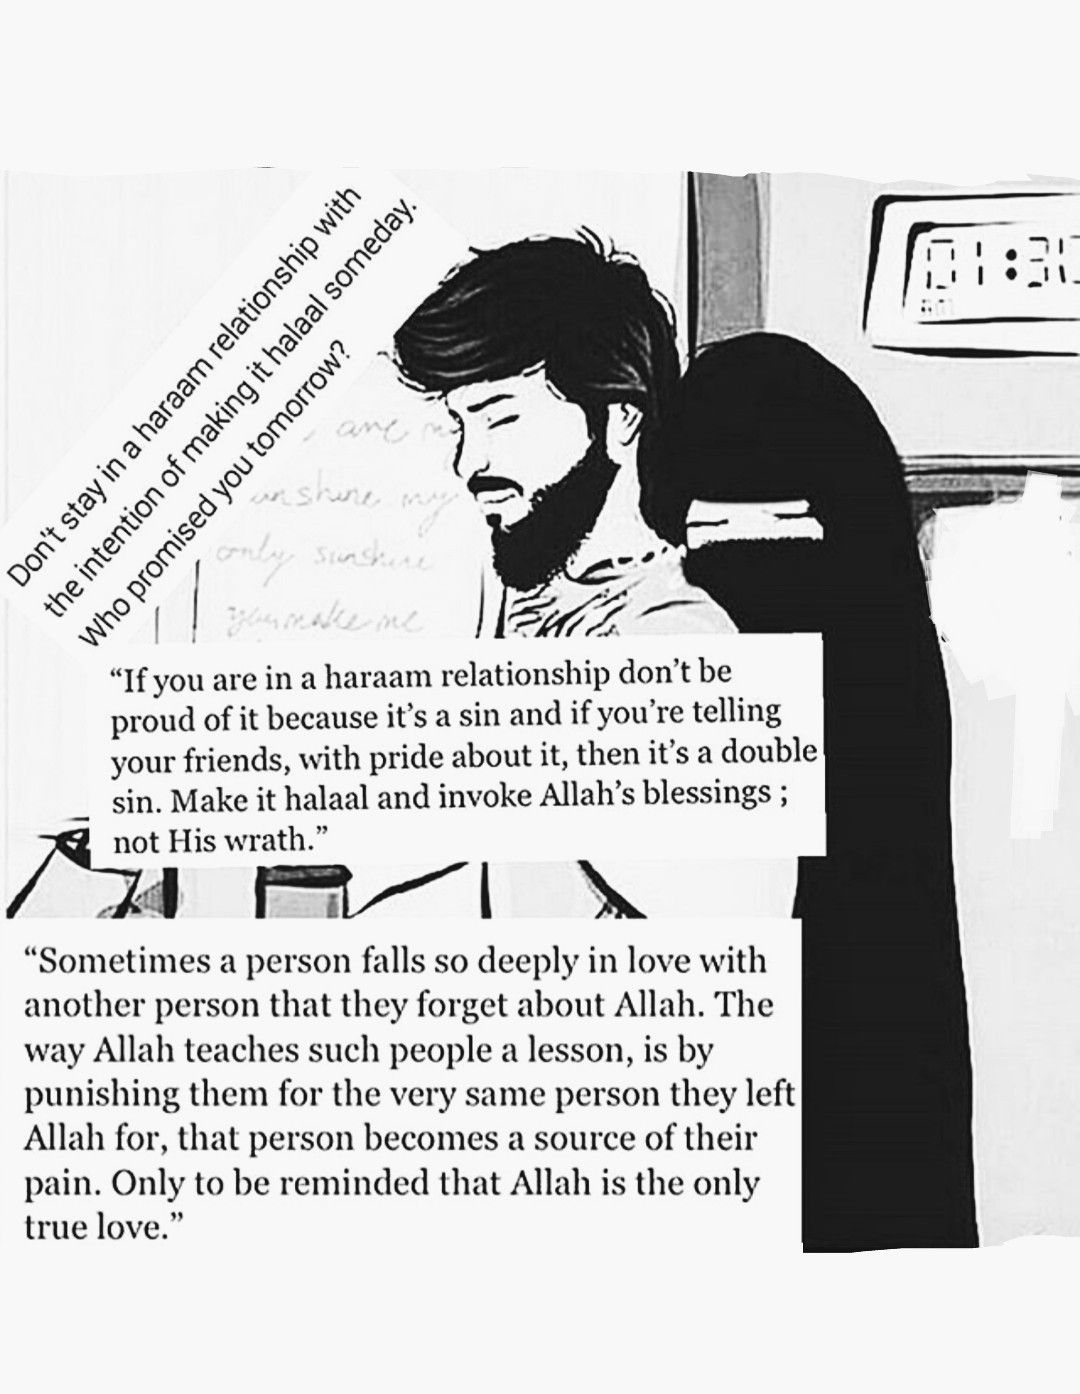 Don't stay in Haram relationship with intention of making it Halal